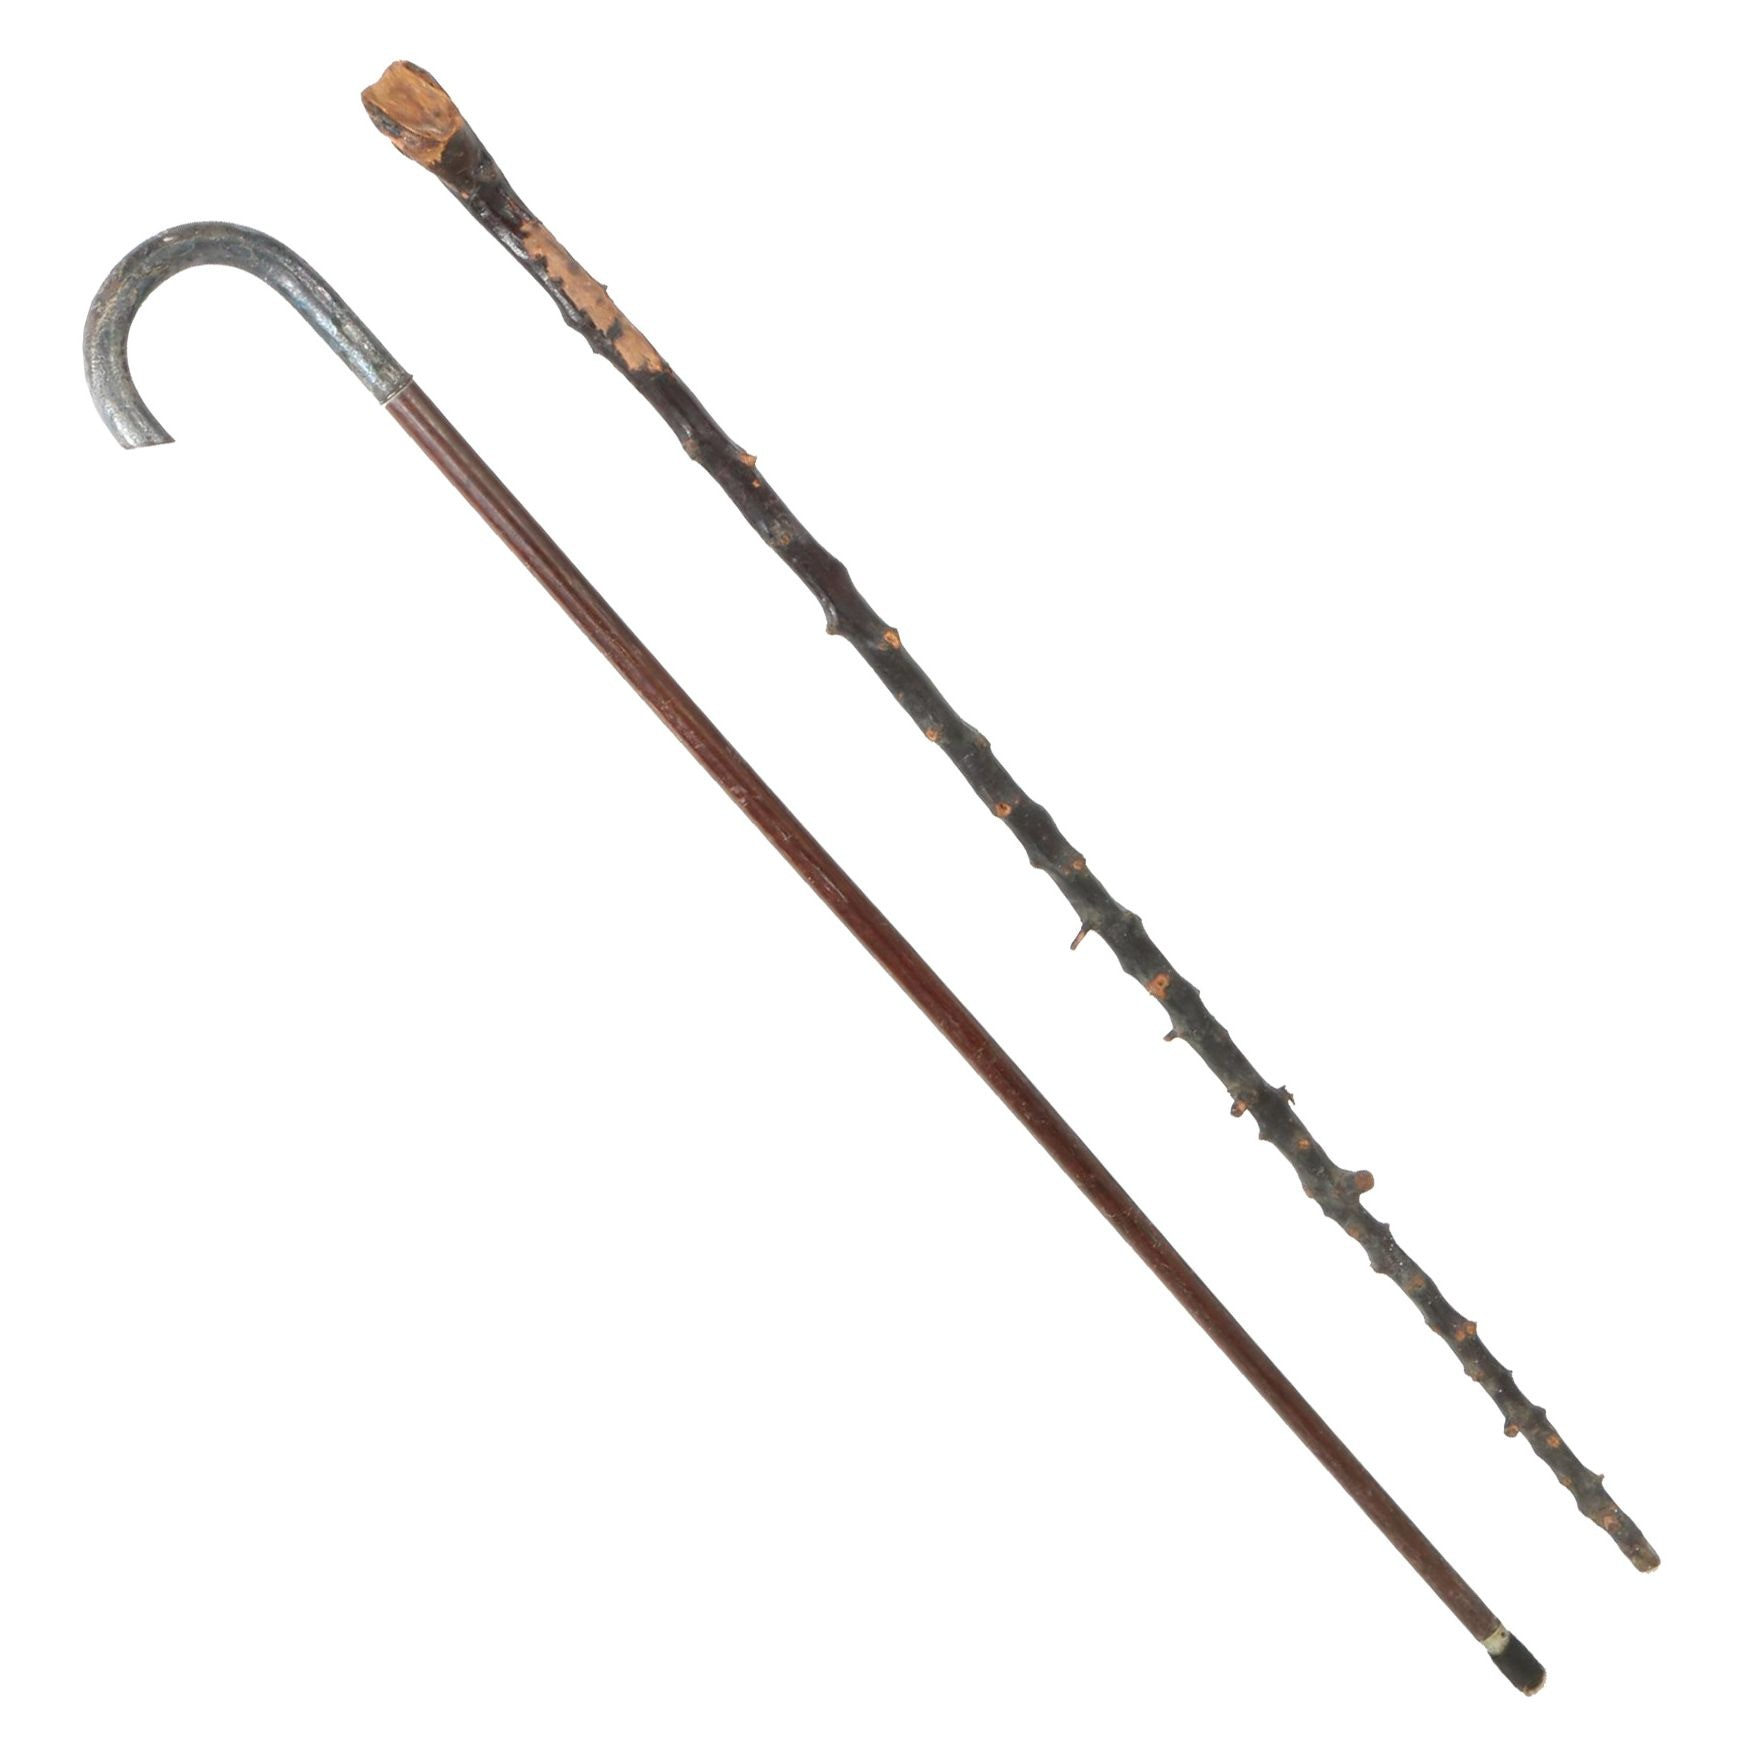 Hand Hammered Sterling Handled Cane and other Wooden Walking Stick